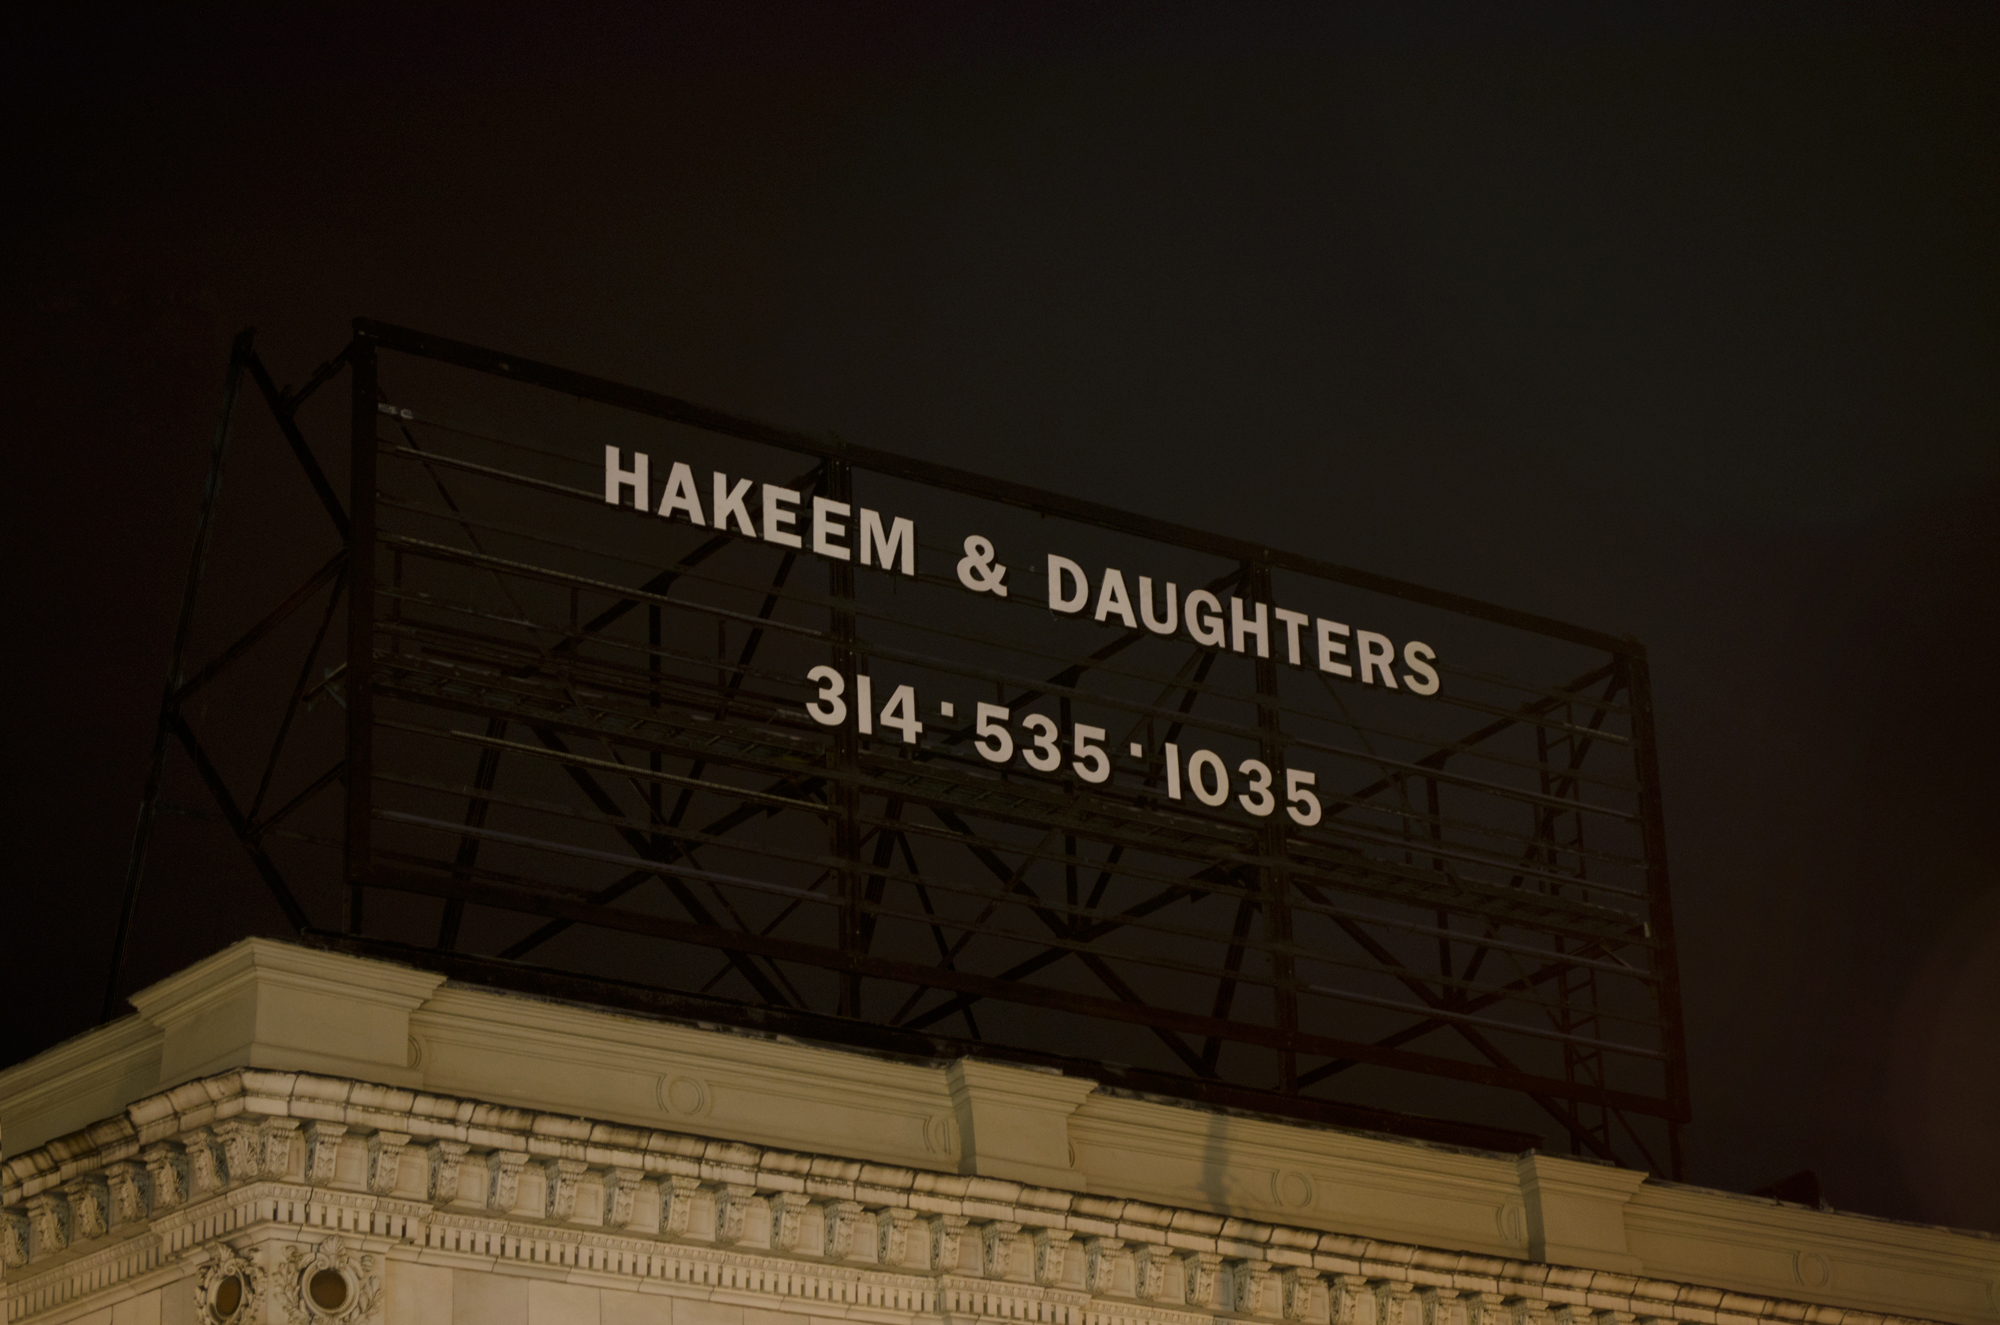 Hakeem & Daughters